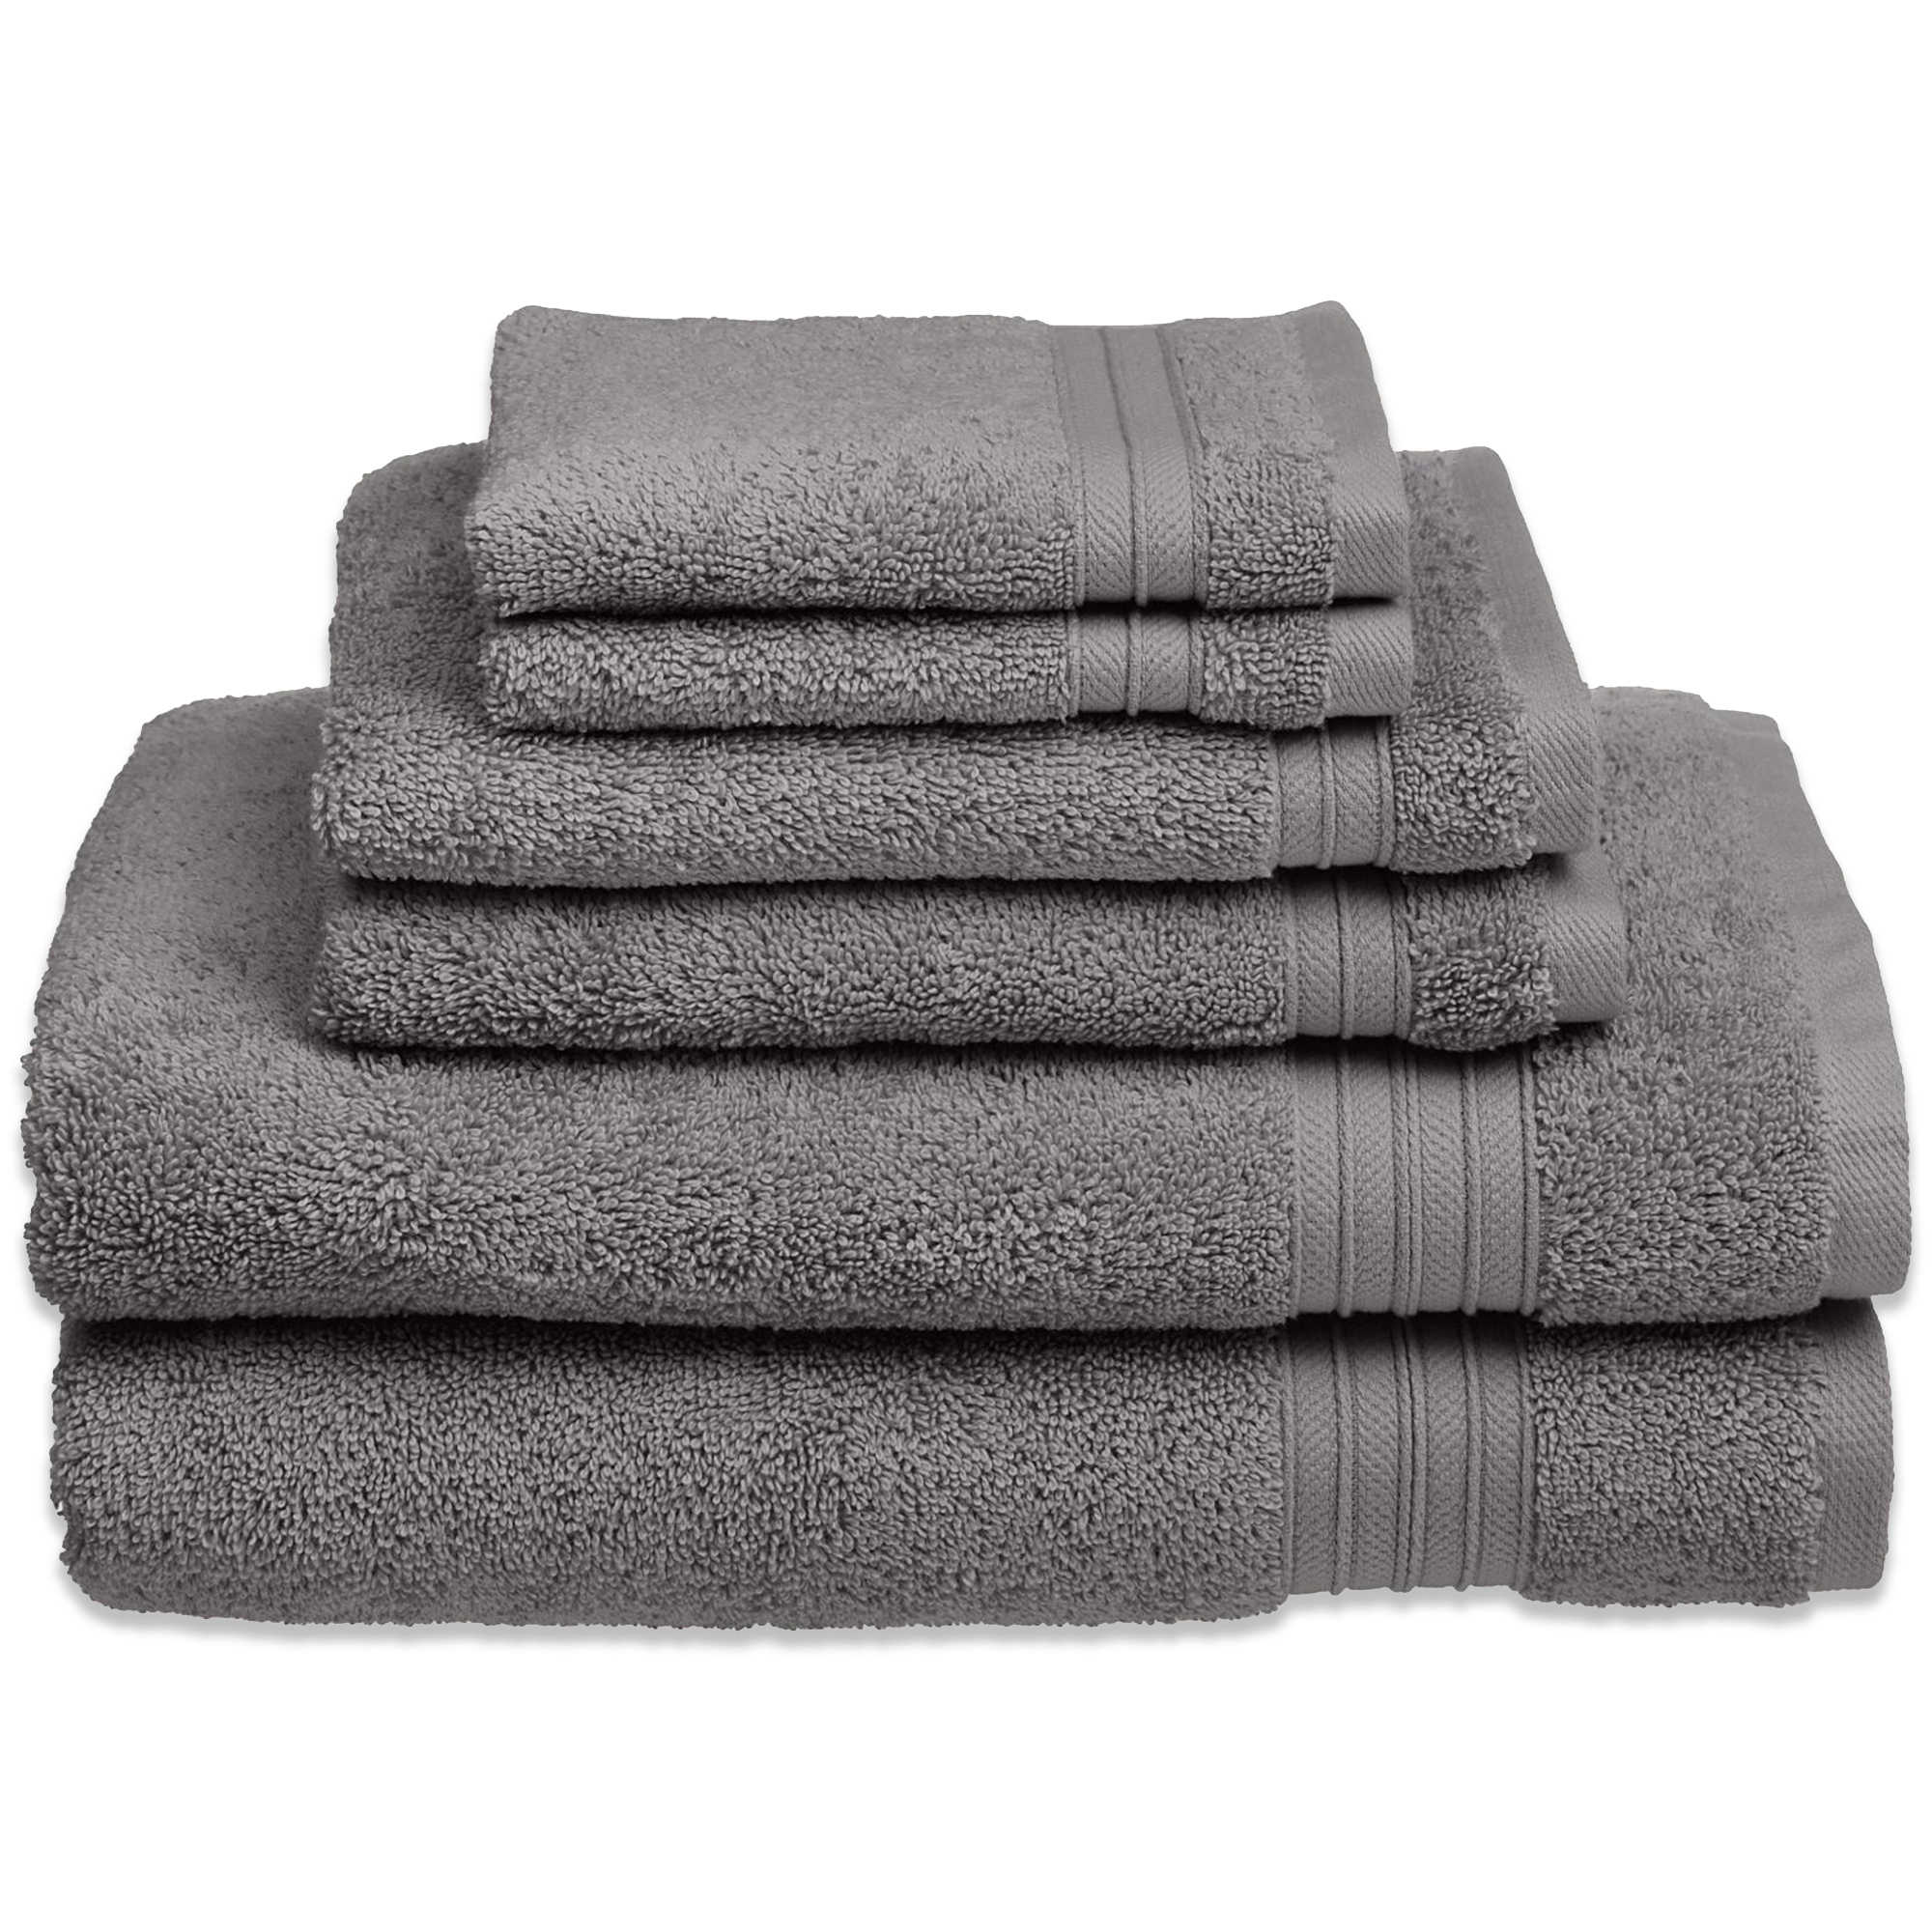 Bed bath beyond french press - Image Of Welspun Hygrosoft 6 Piece Towel Set